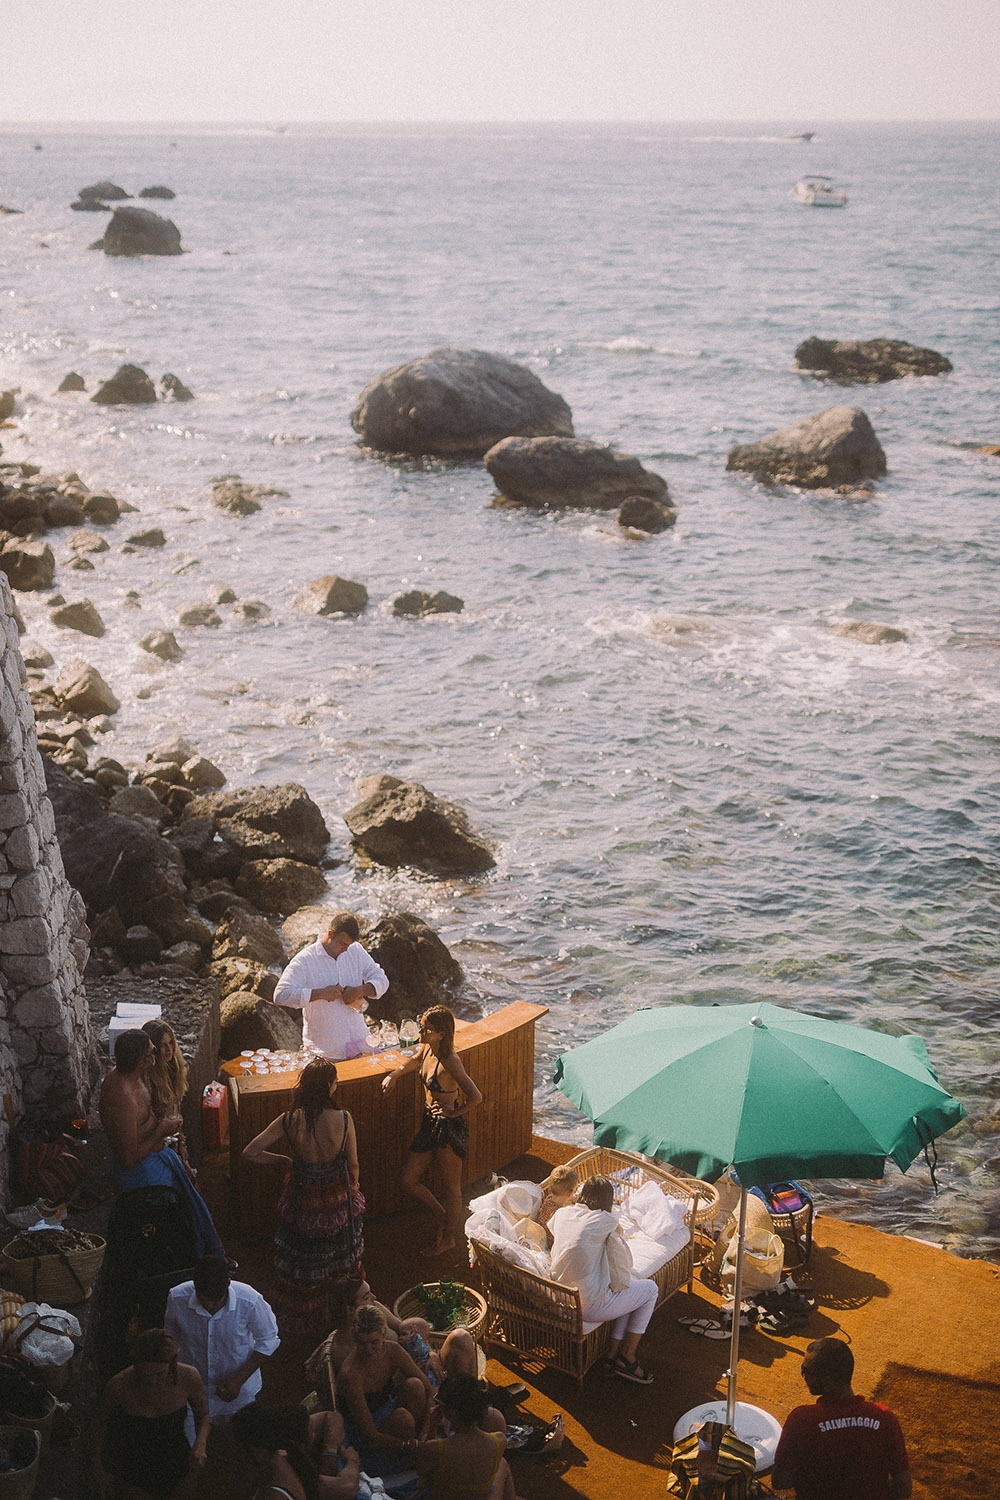 A pop-up bar on the shoreline, surrounded by men and women lounging by the water.